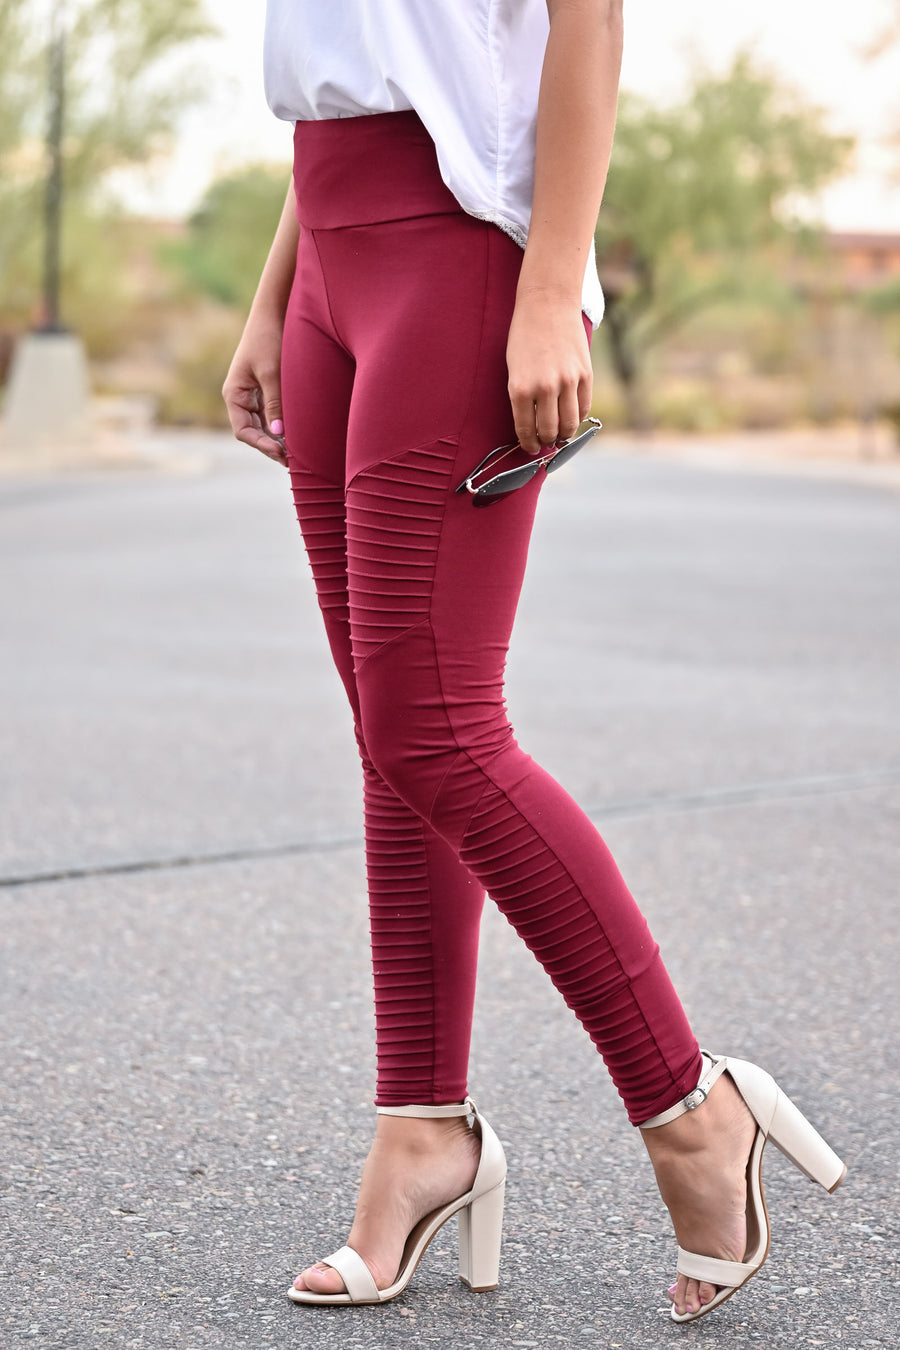 Living On The Edge Moto Leggings - Wine womens trendy high waist comfortable leggings closet candy front